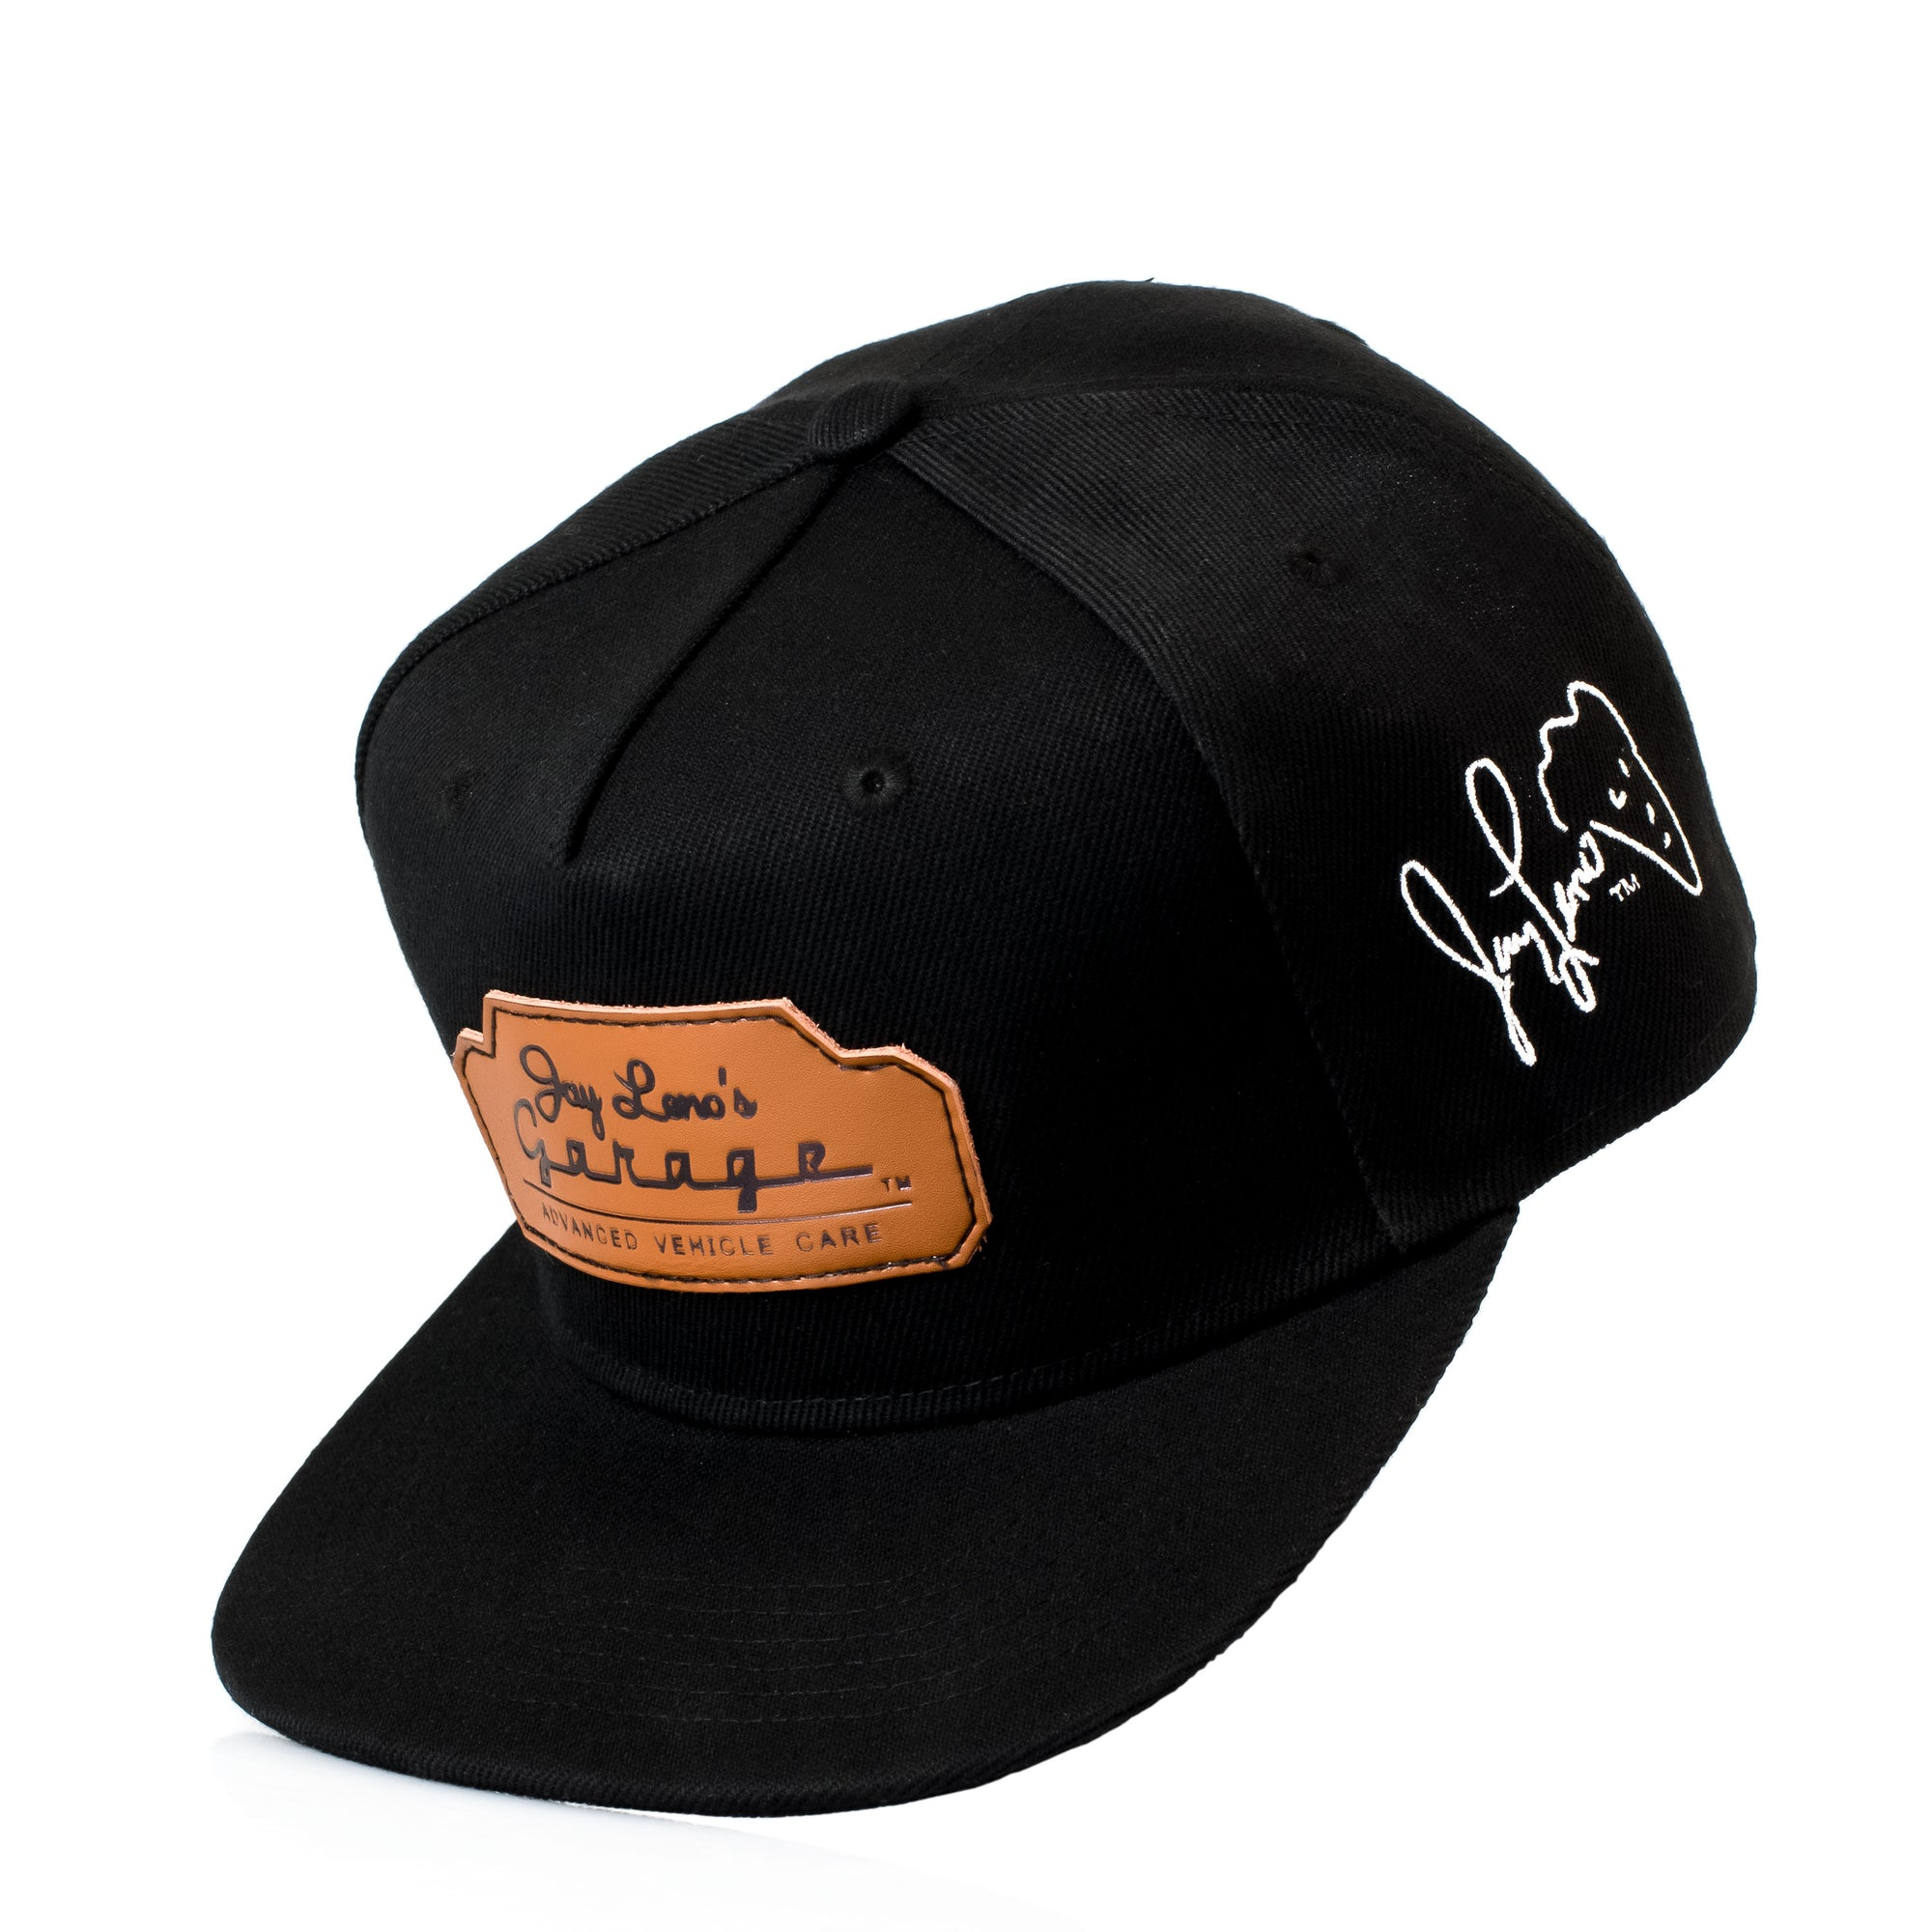 80c694a6df6e0 Leather Patch Snapback Hat - Leno s Garage